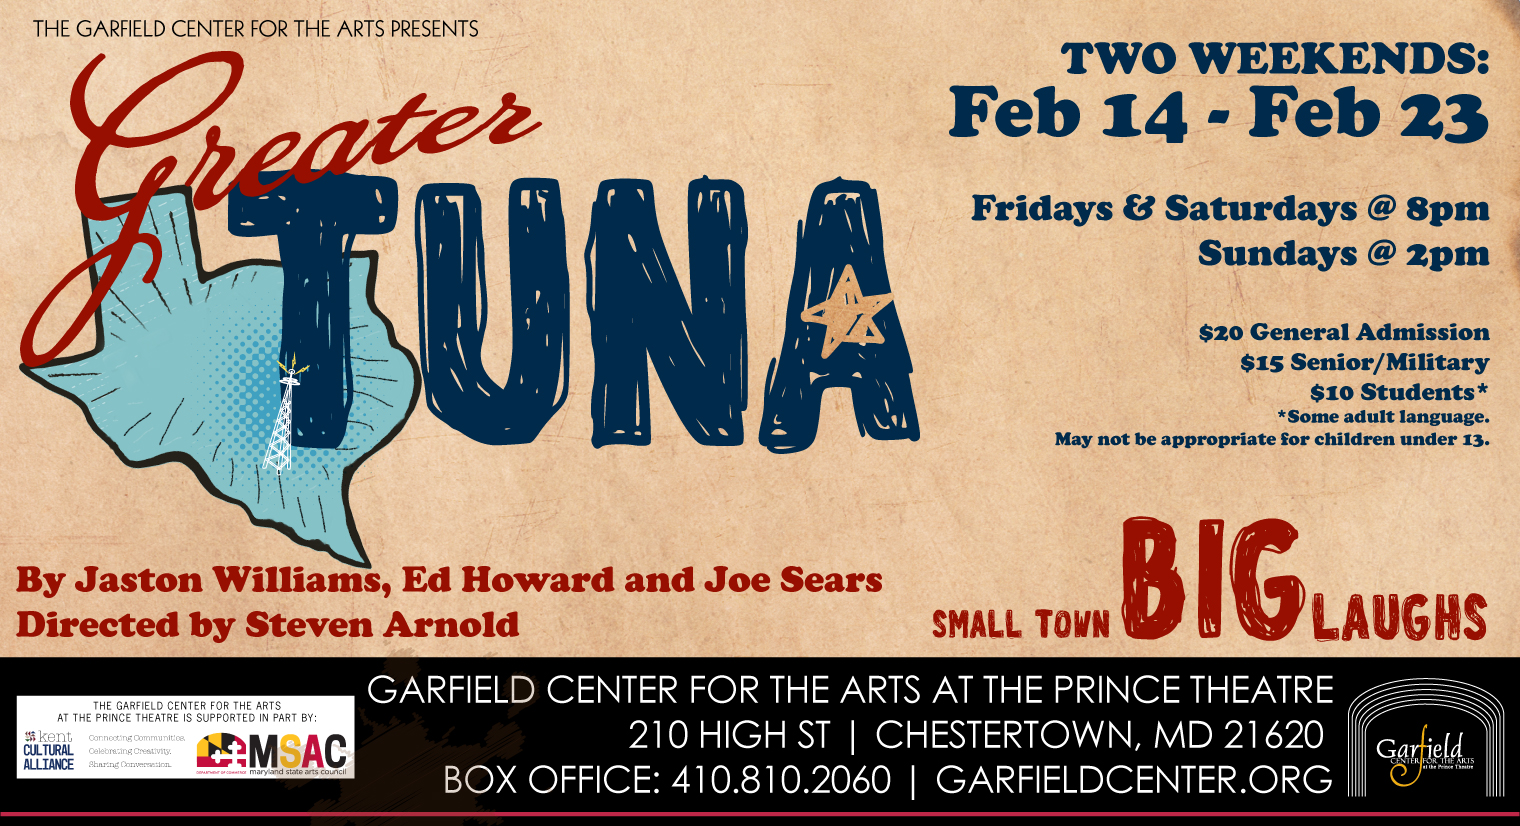 The Garfield Center presents Greater Tuna